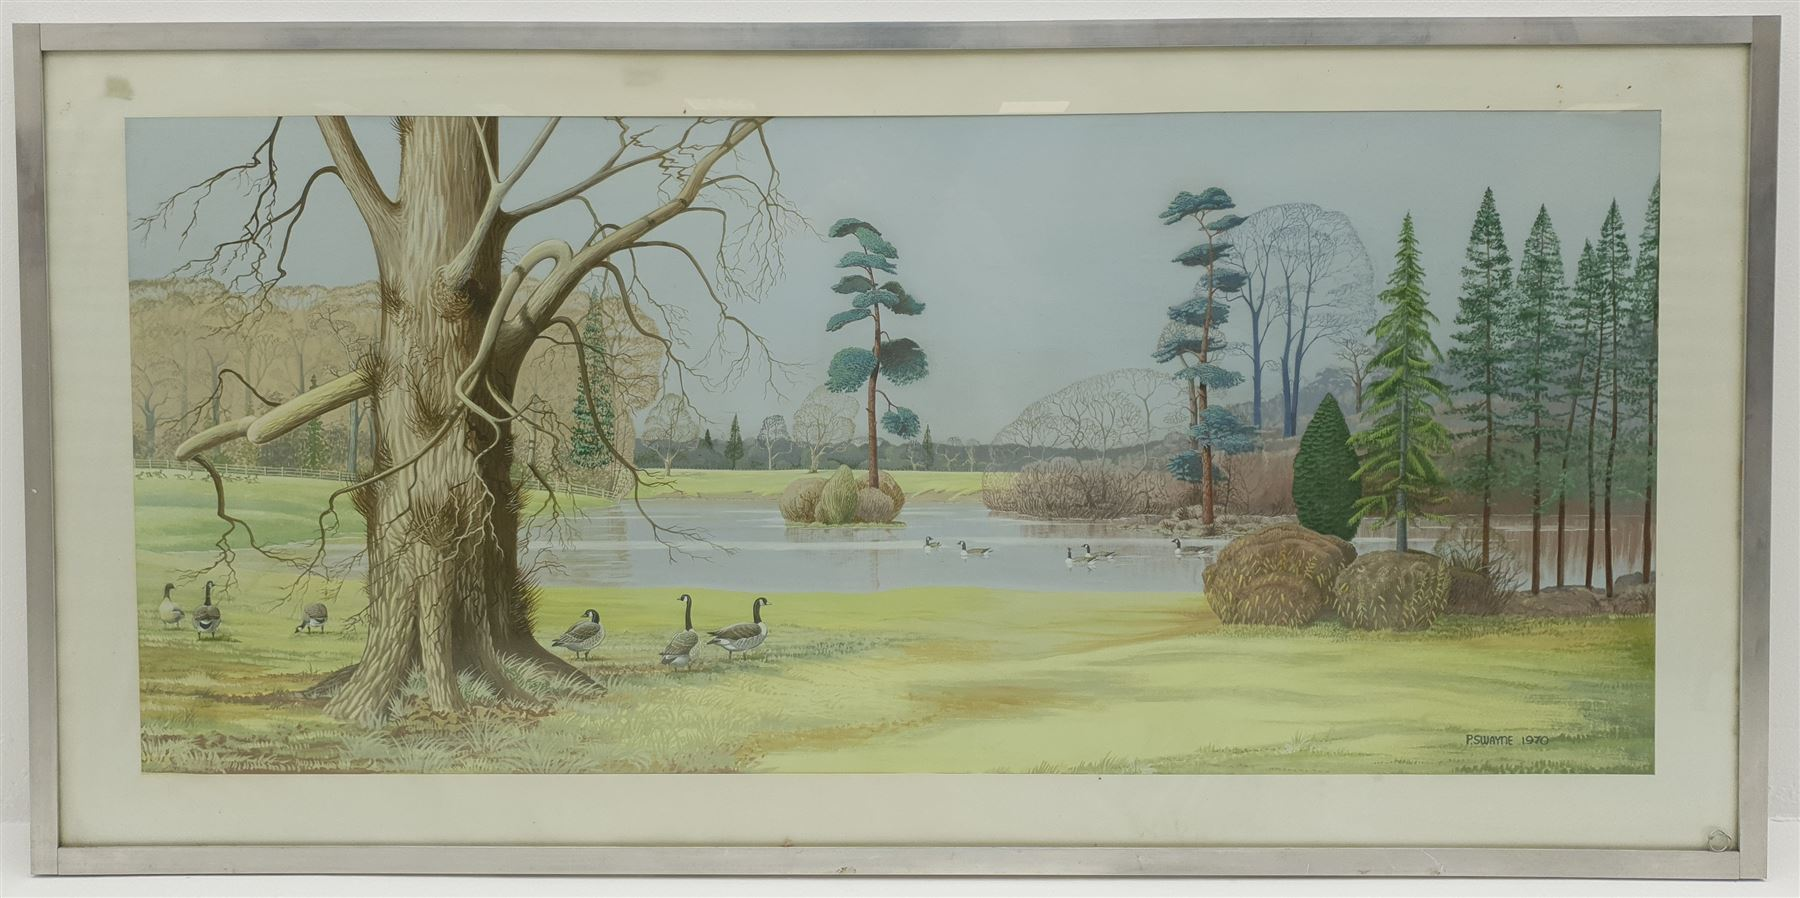 P Swayne (British 20th century): Geese in a River Landscape - Image 2 of 5